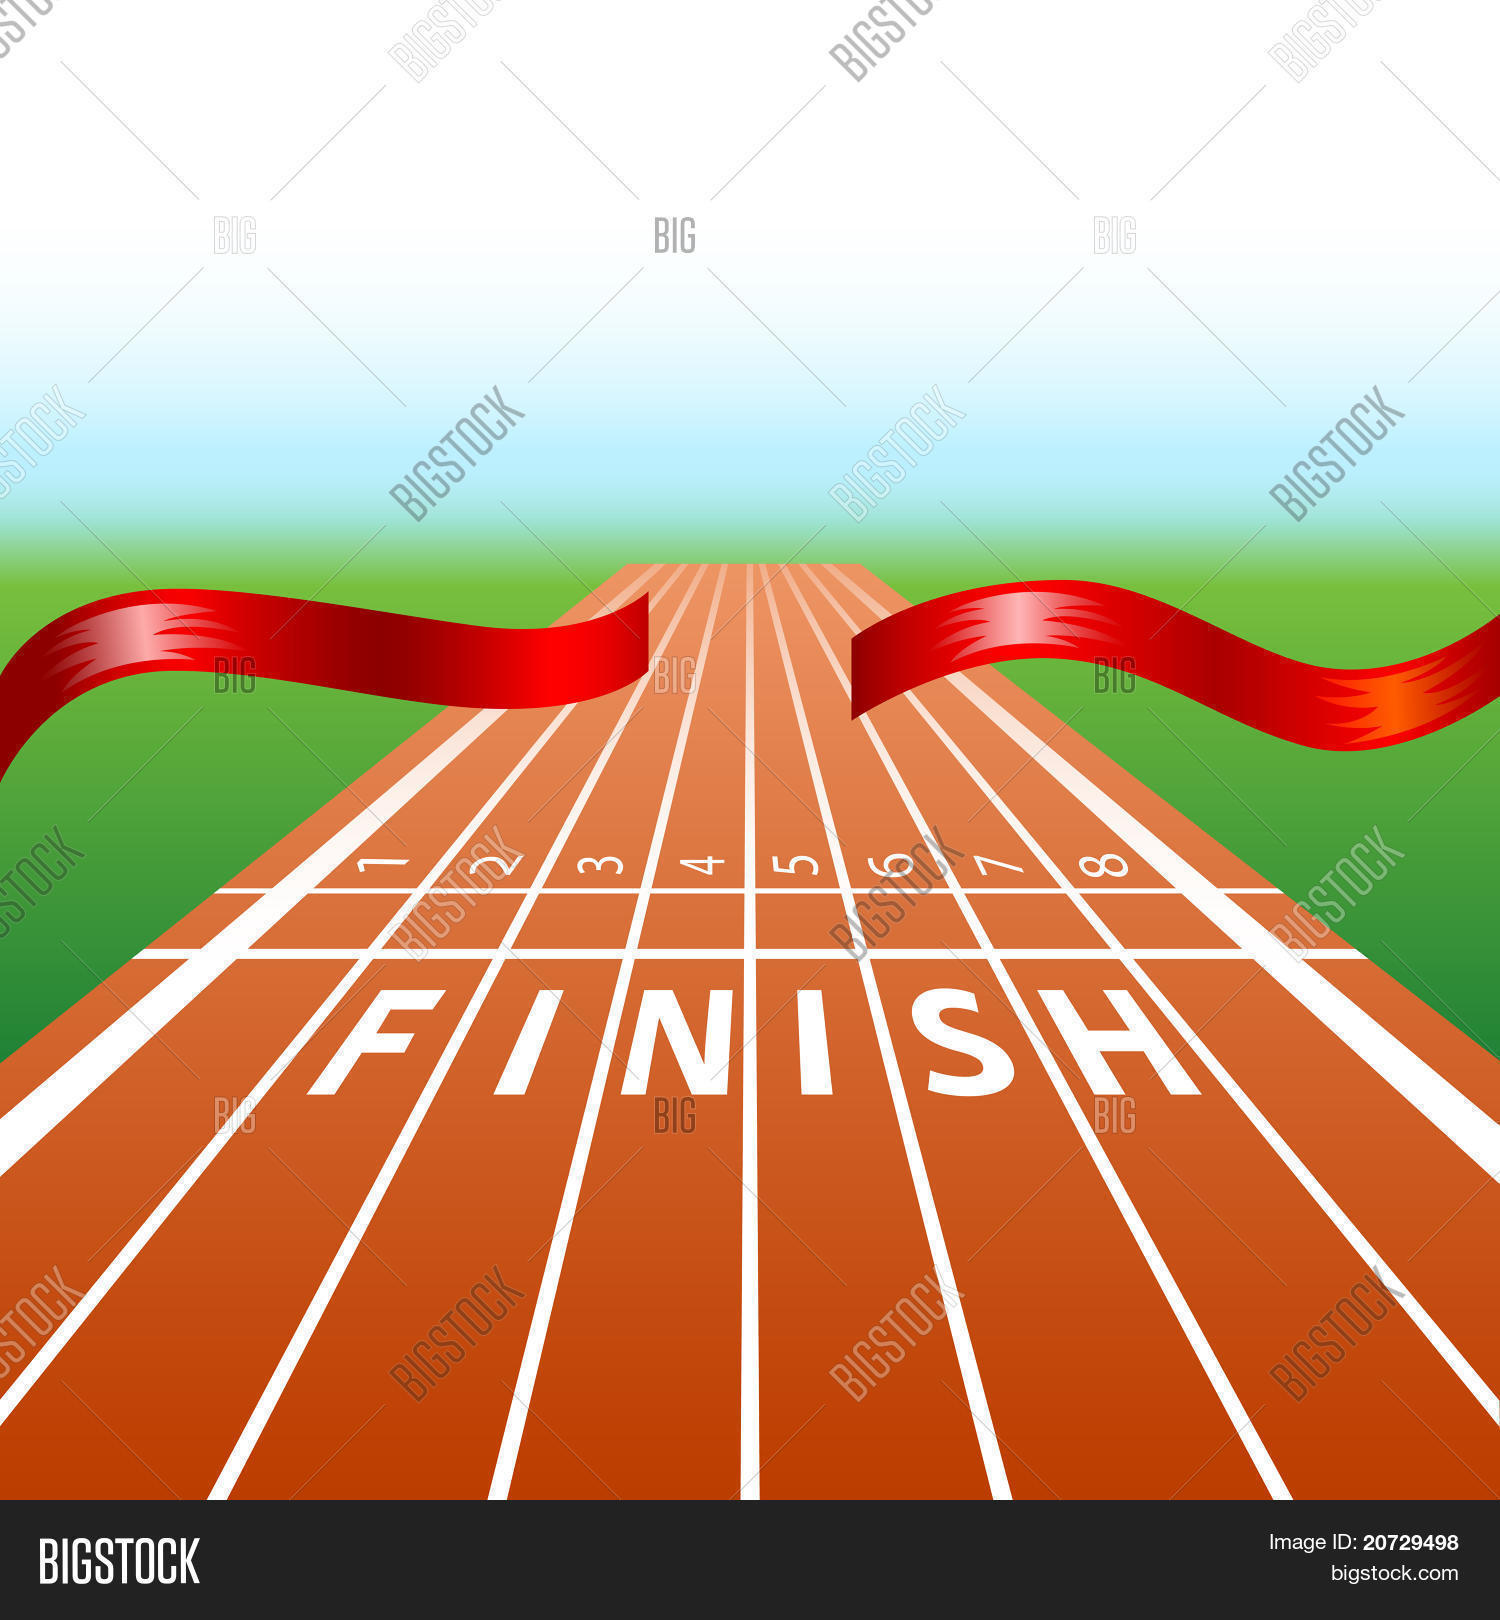 In Line Finishing : Ribbon in finishing line with racing track stock vector